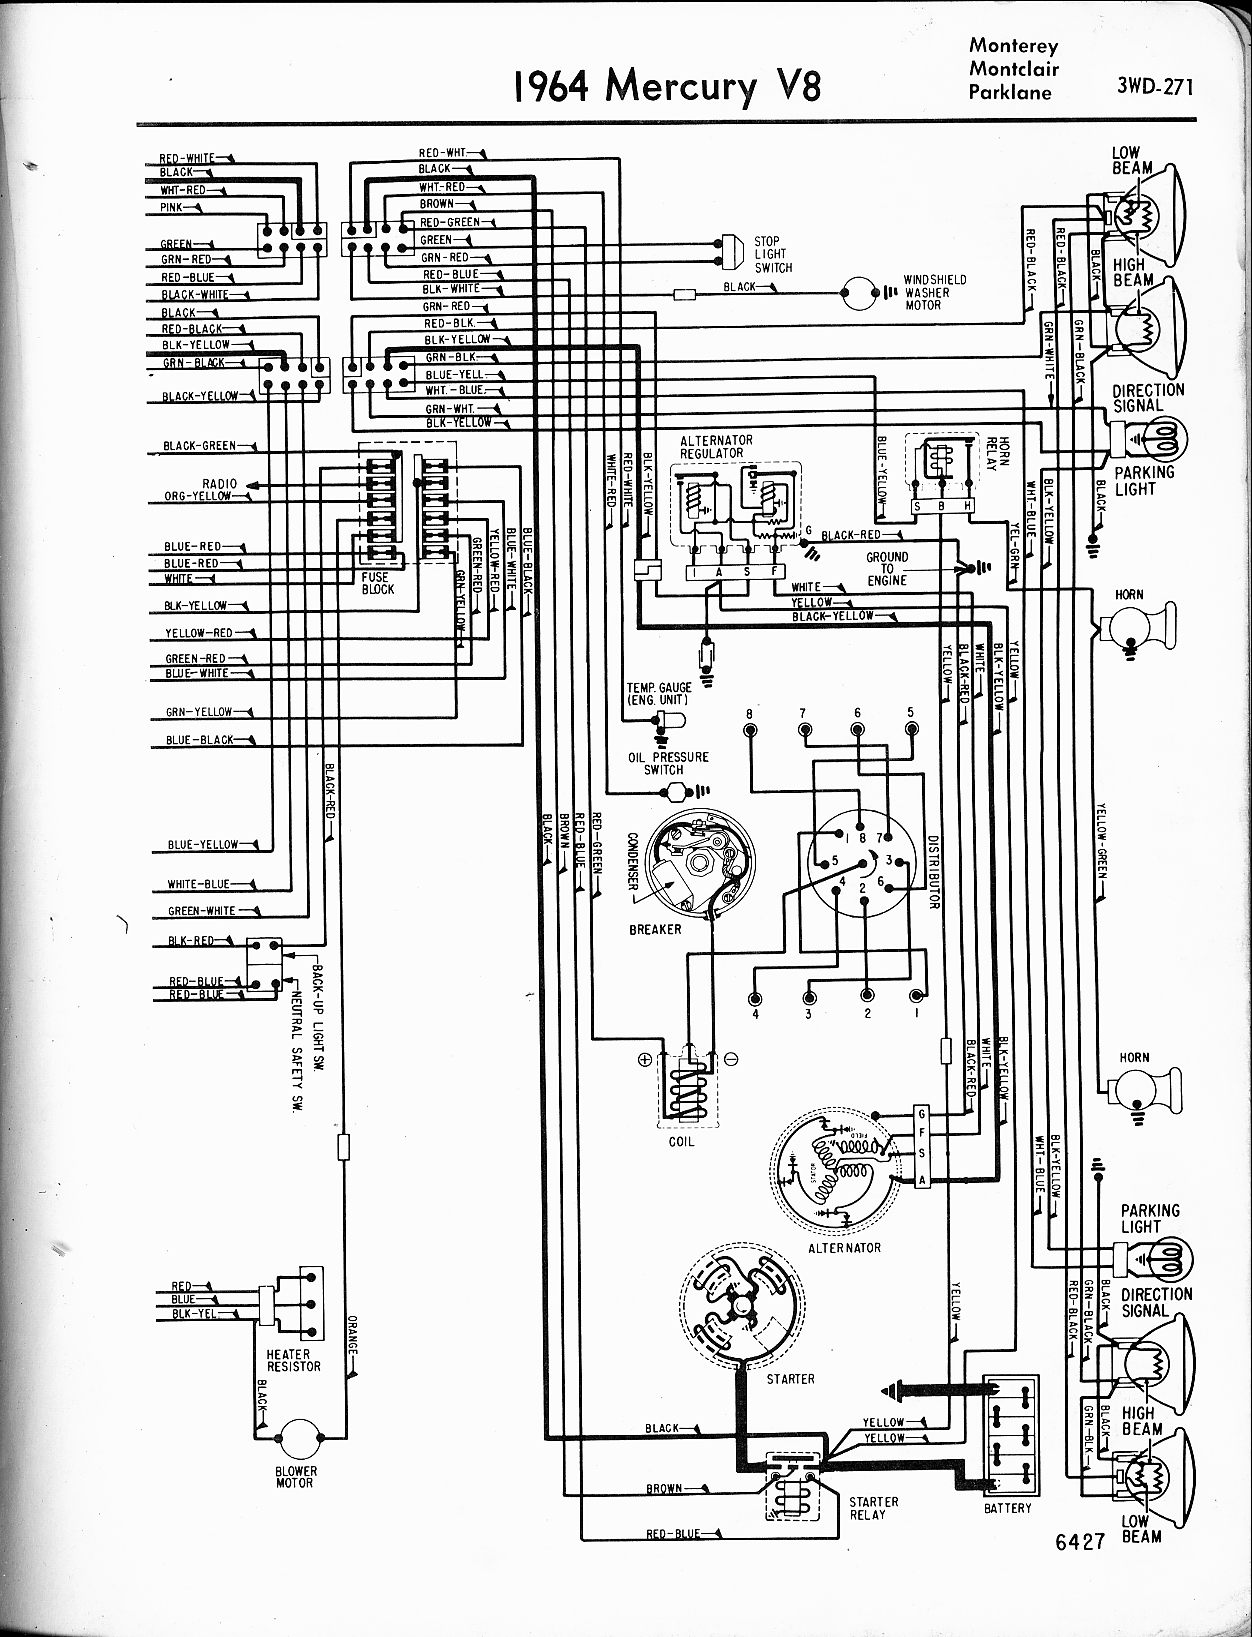 MWire5765 271 mercury wiring diagrams the old car manual project 65 comet wiring diagram at soozxer.org